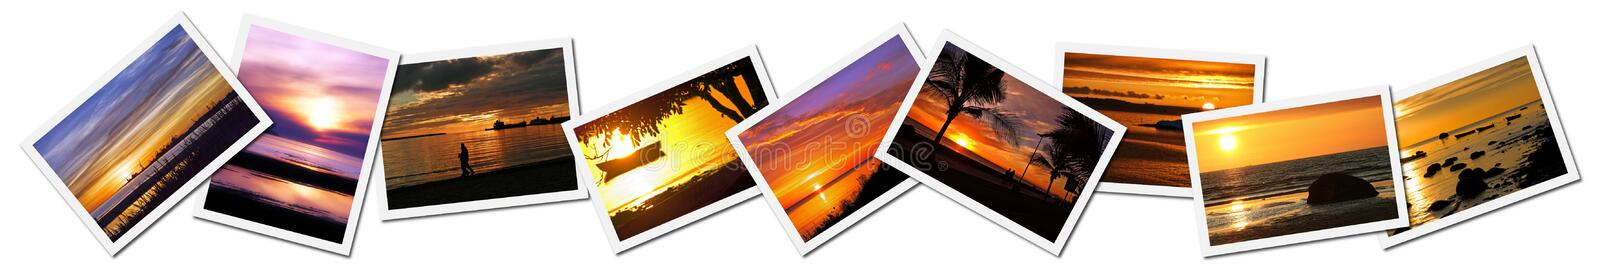 Collage of sunset photos royalty free stock images